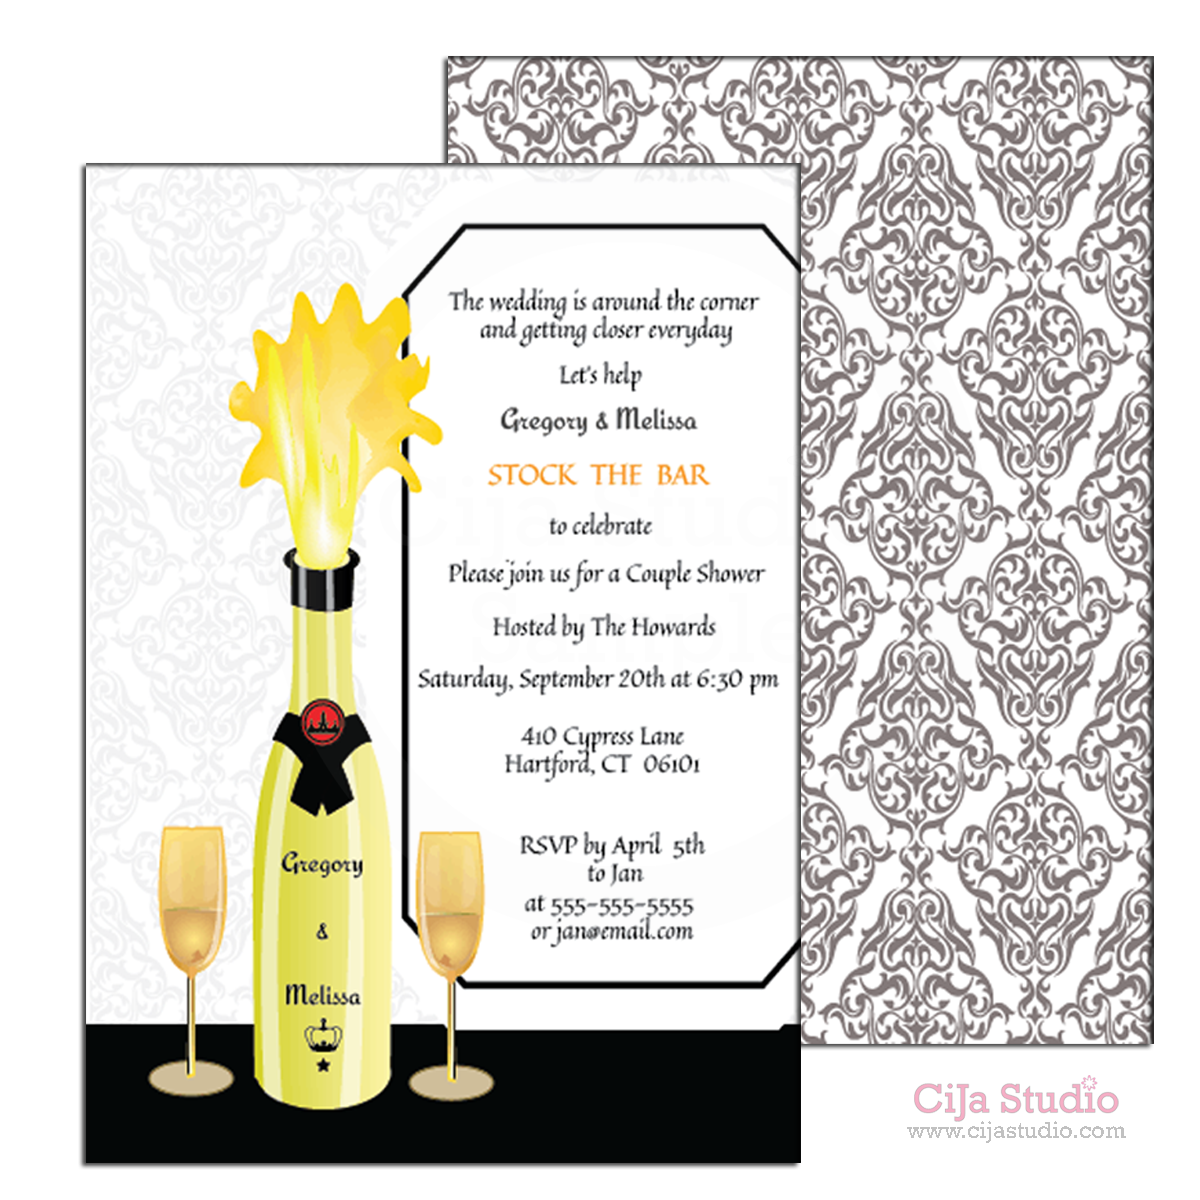 Stock the Bar- Bridal Shower - Couple Shower - Invitations Champagne ...